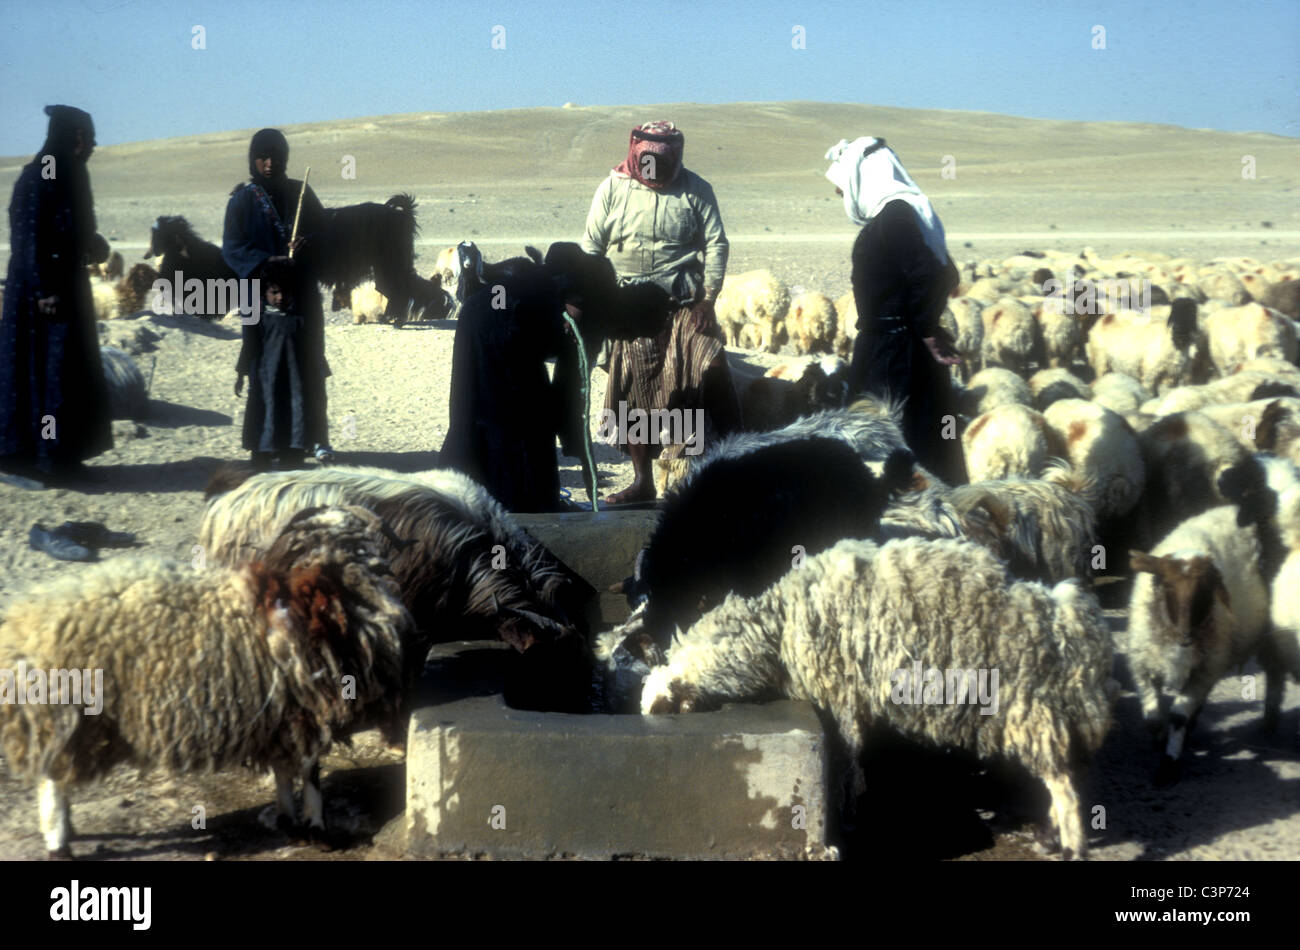 Bedouin Water Sheep At A Desert Well In Syria Stock Photo Alamy The breed is raised primarily for meat. https www alamy com stock photo bedouin water sheep at a desert well in syria 36753196 html